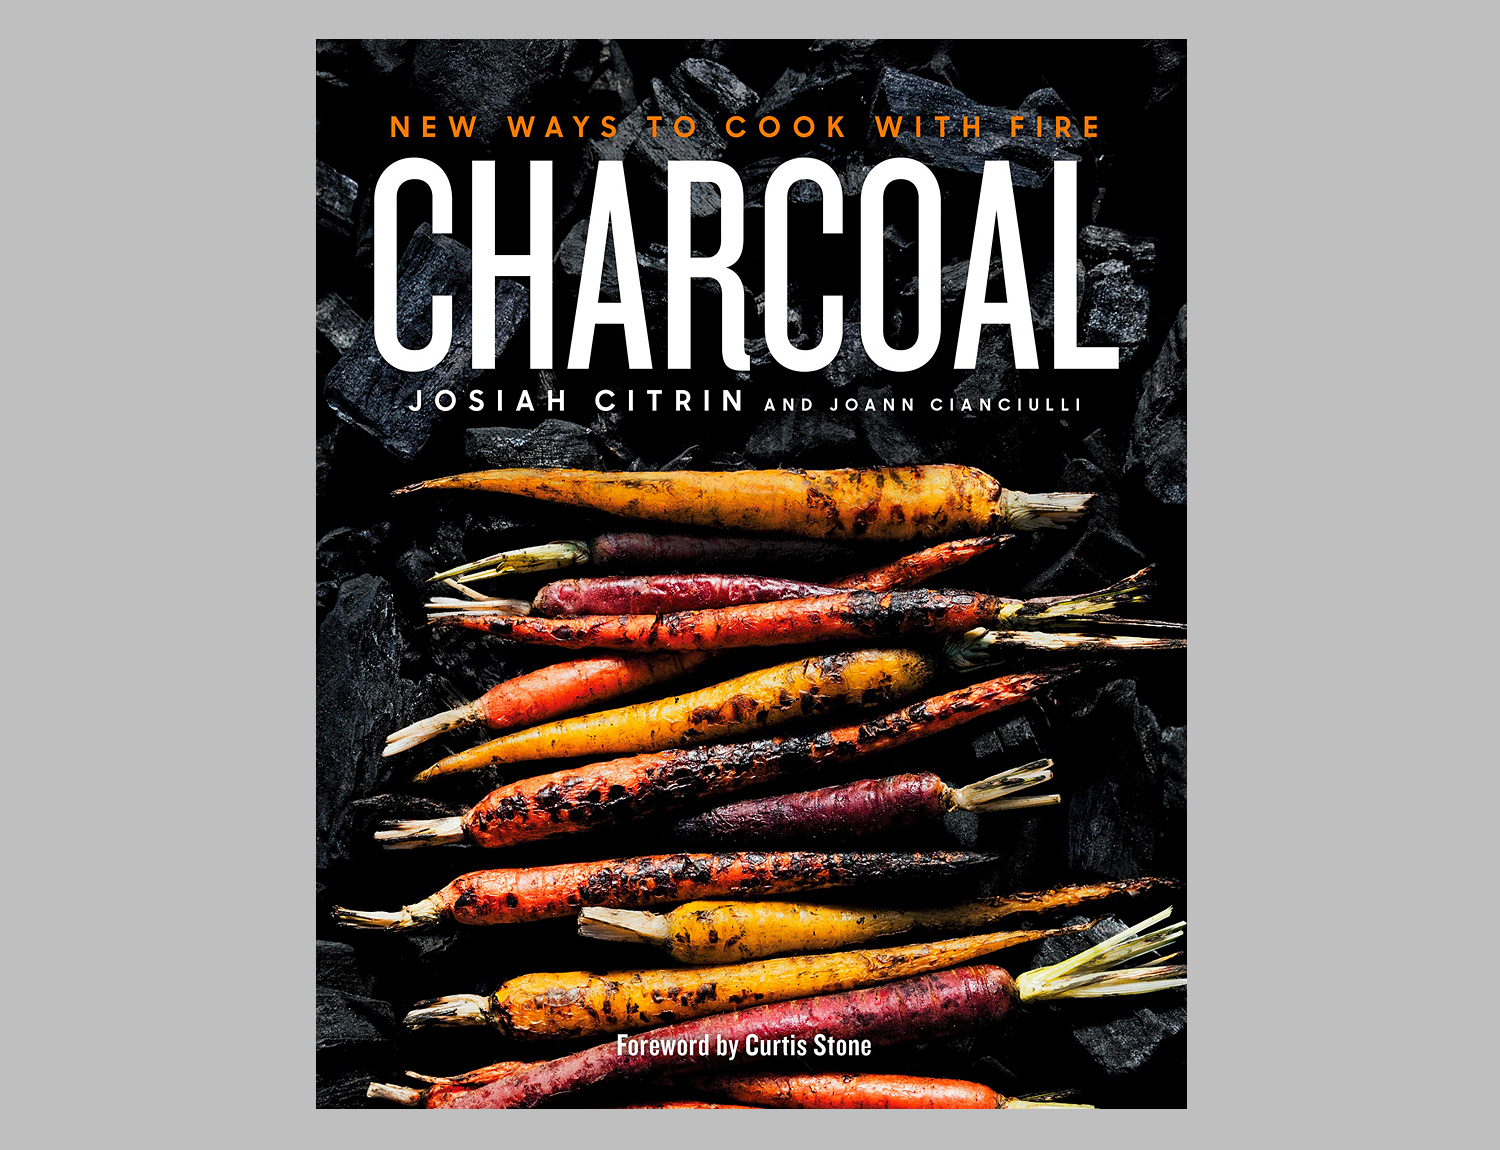 Charcoal: New Ways to Cook with Fire at werd.com